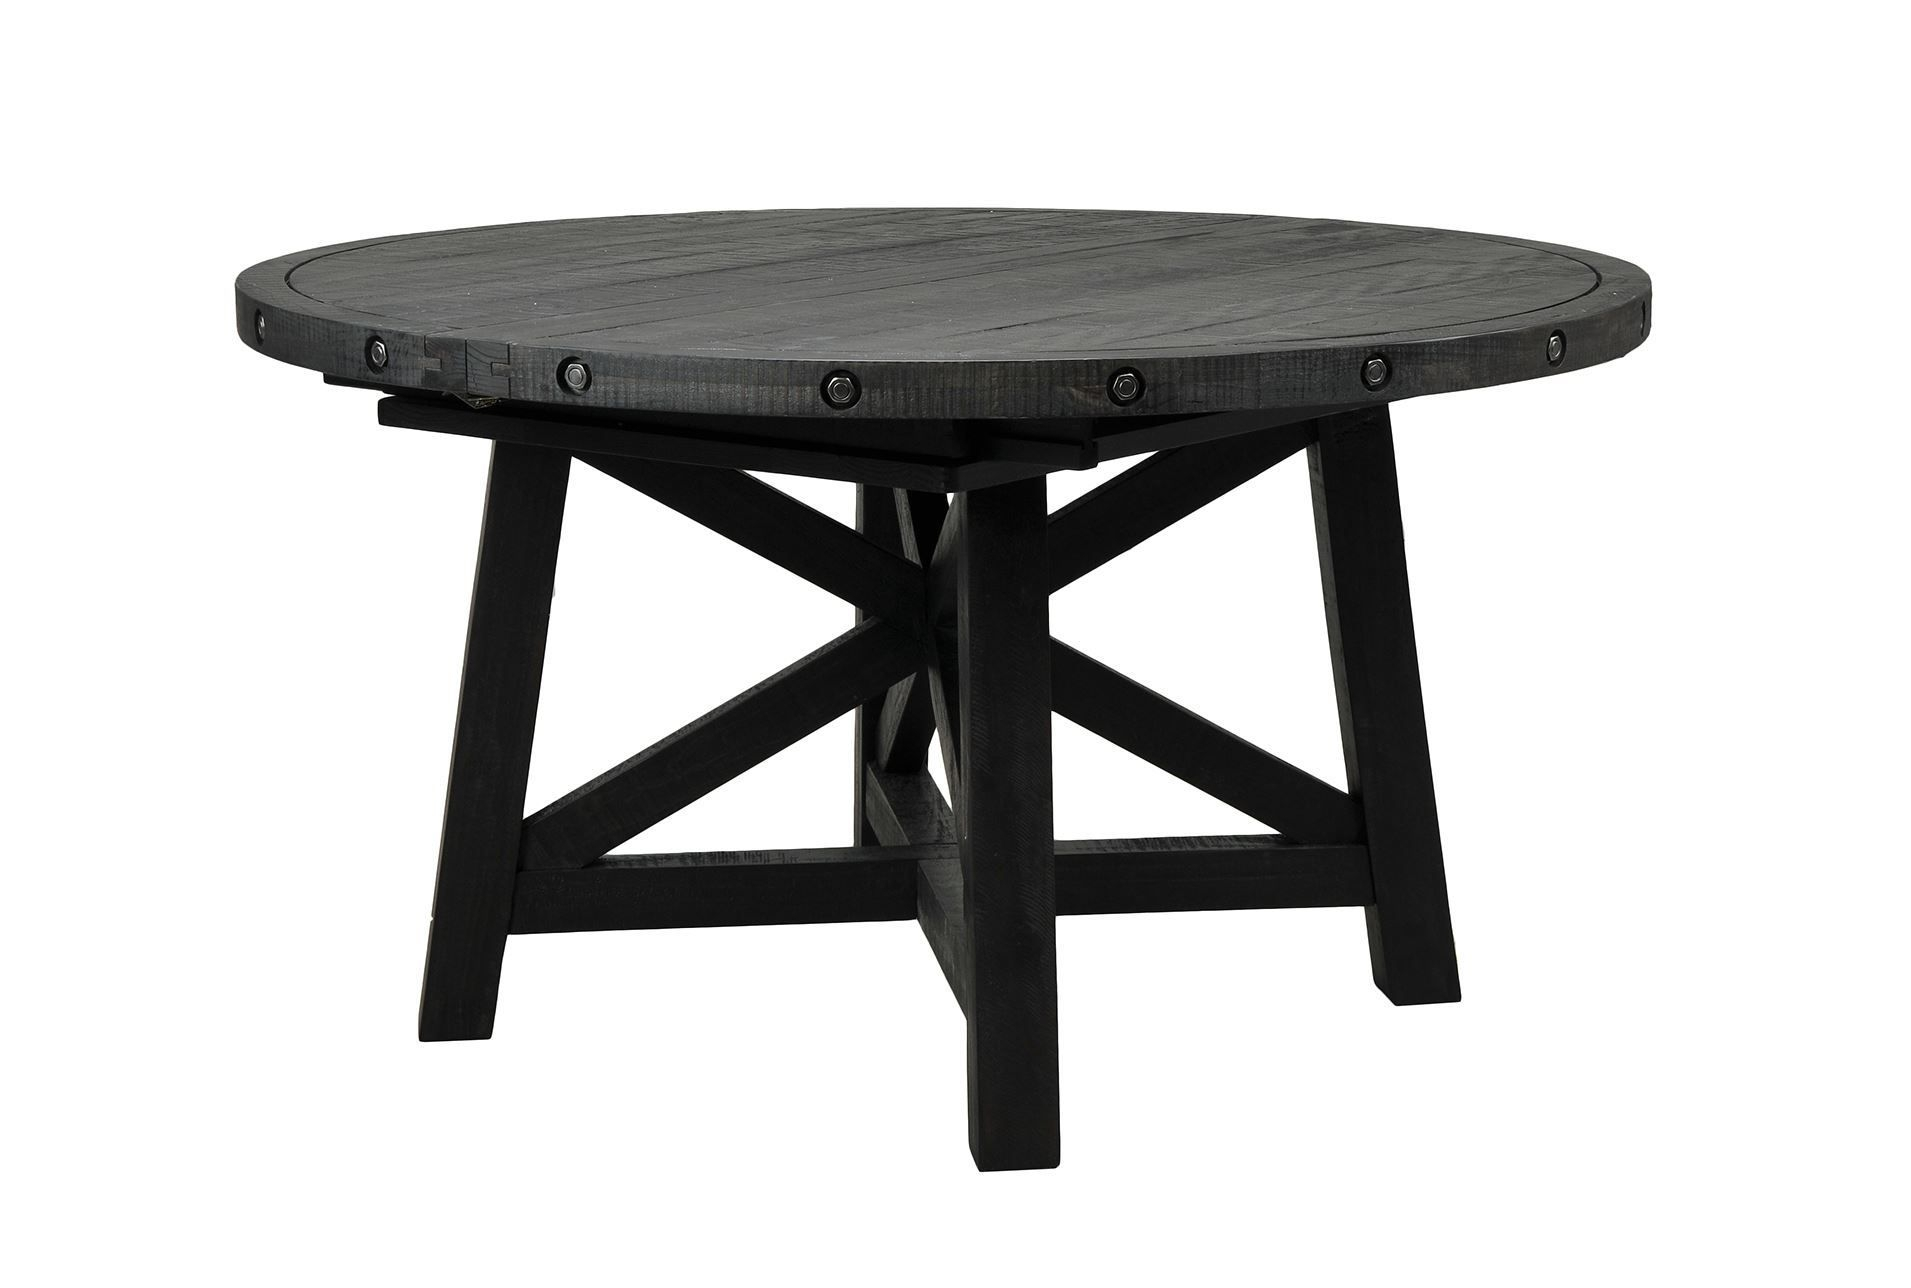 Jaxon Round Extension Dining Table | Dining Tables | Pinterest Inside Newest Jaxon Round Extension Dining Tables (Photo 3 of 20)